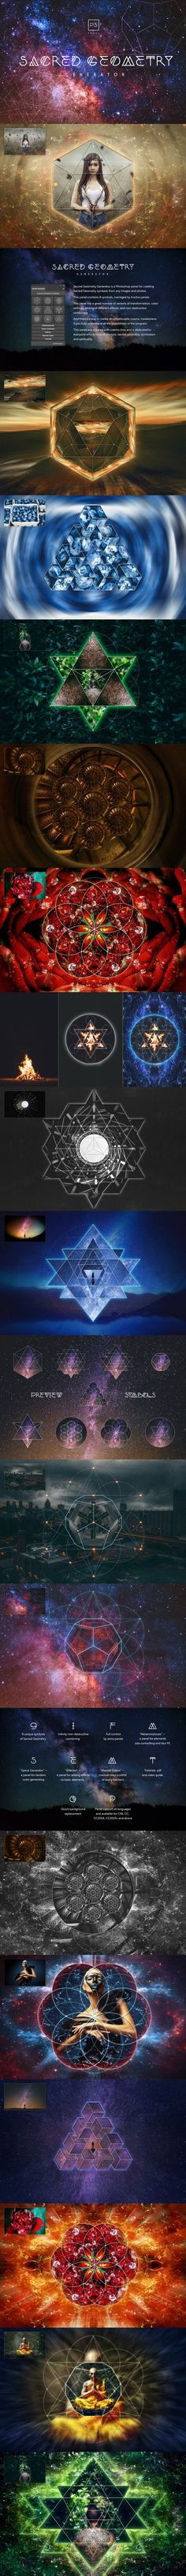 Sacred Geometry Generator. Photo Effect Photoshop Actions. $20.00